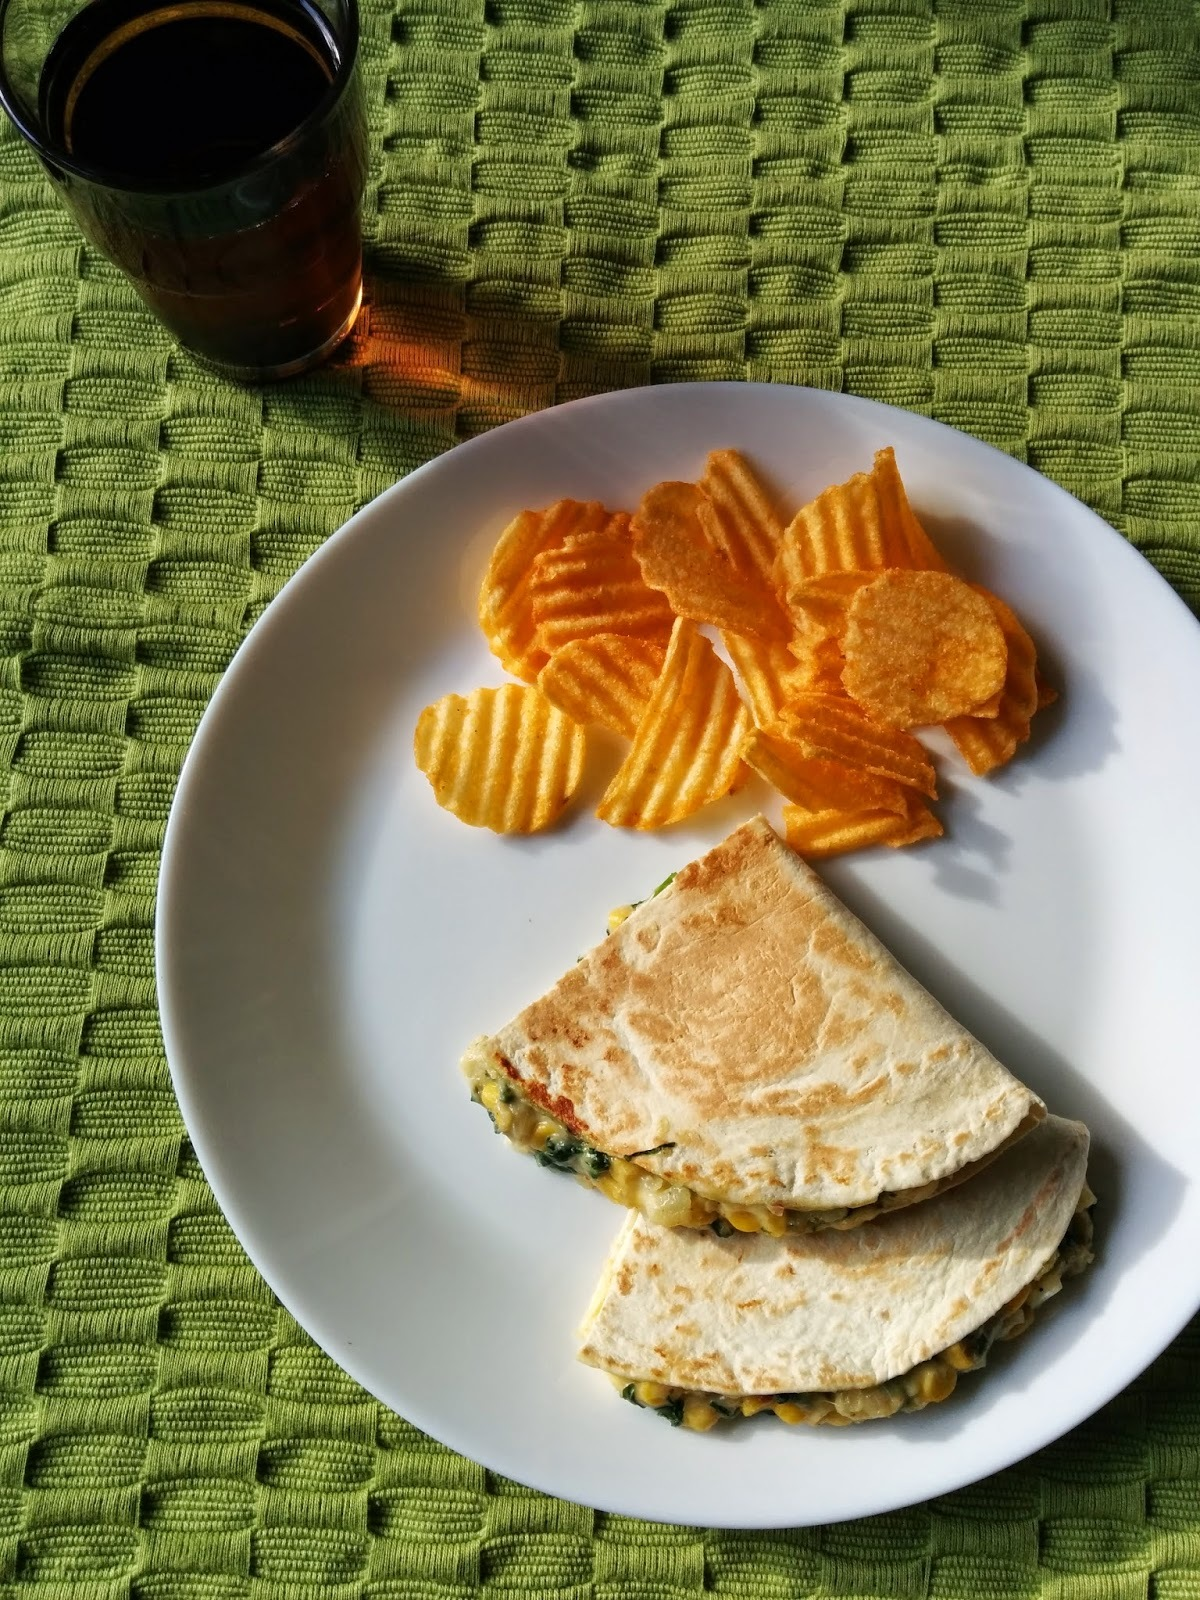 Recipe of Corn & Spinach Quesadillas | How to Make Corn & Spinach Quesadillas